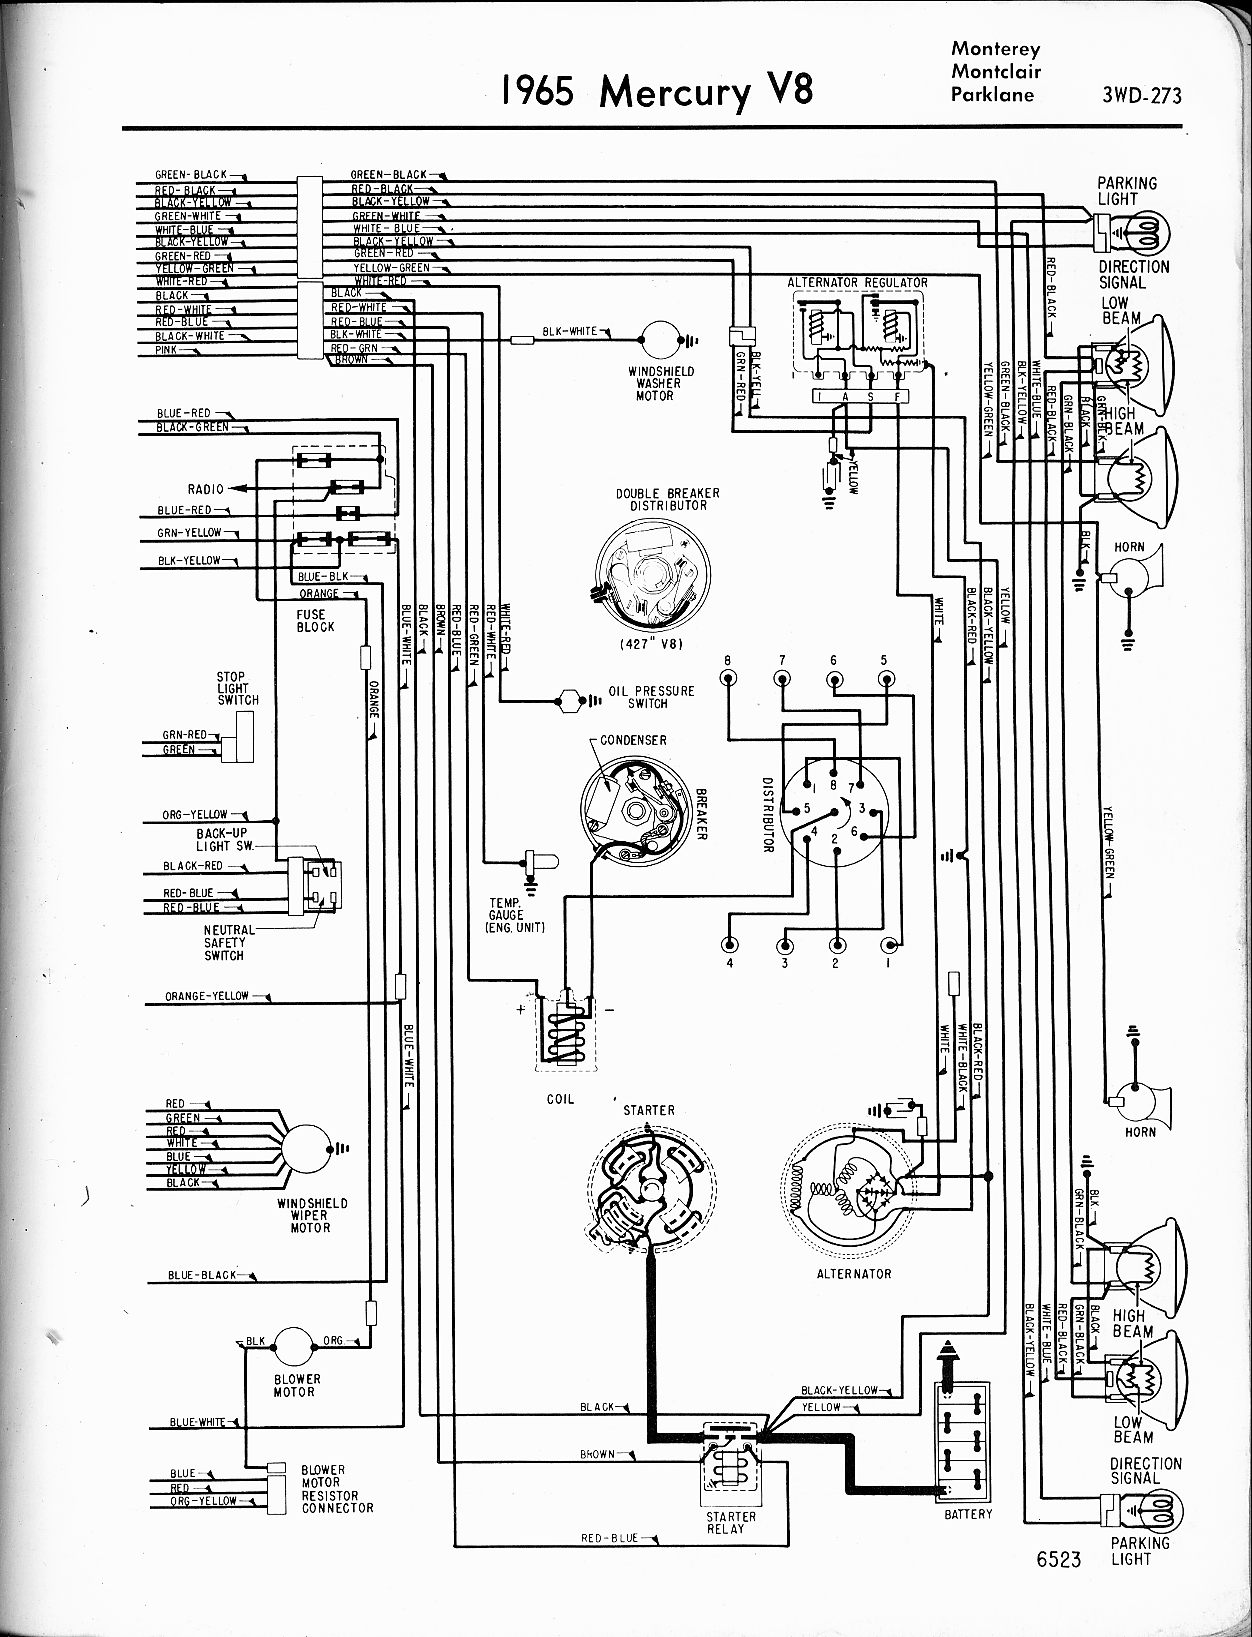 1969 mercury cougar wiring diagram mercury cougar wiring diagram mercury wiring diagrams - the old car manual project #14